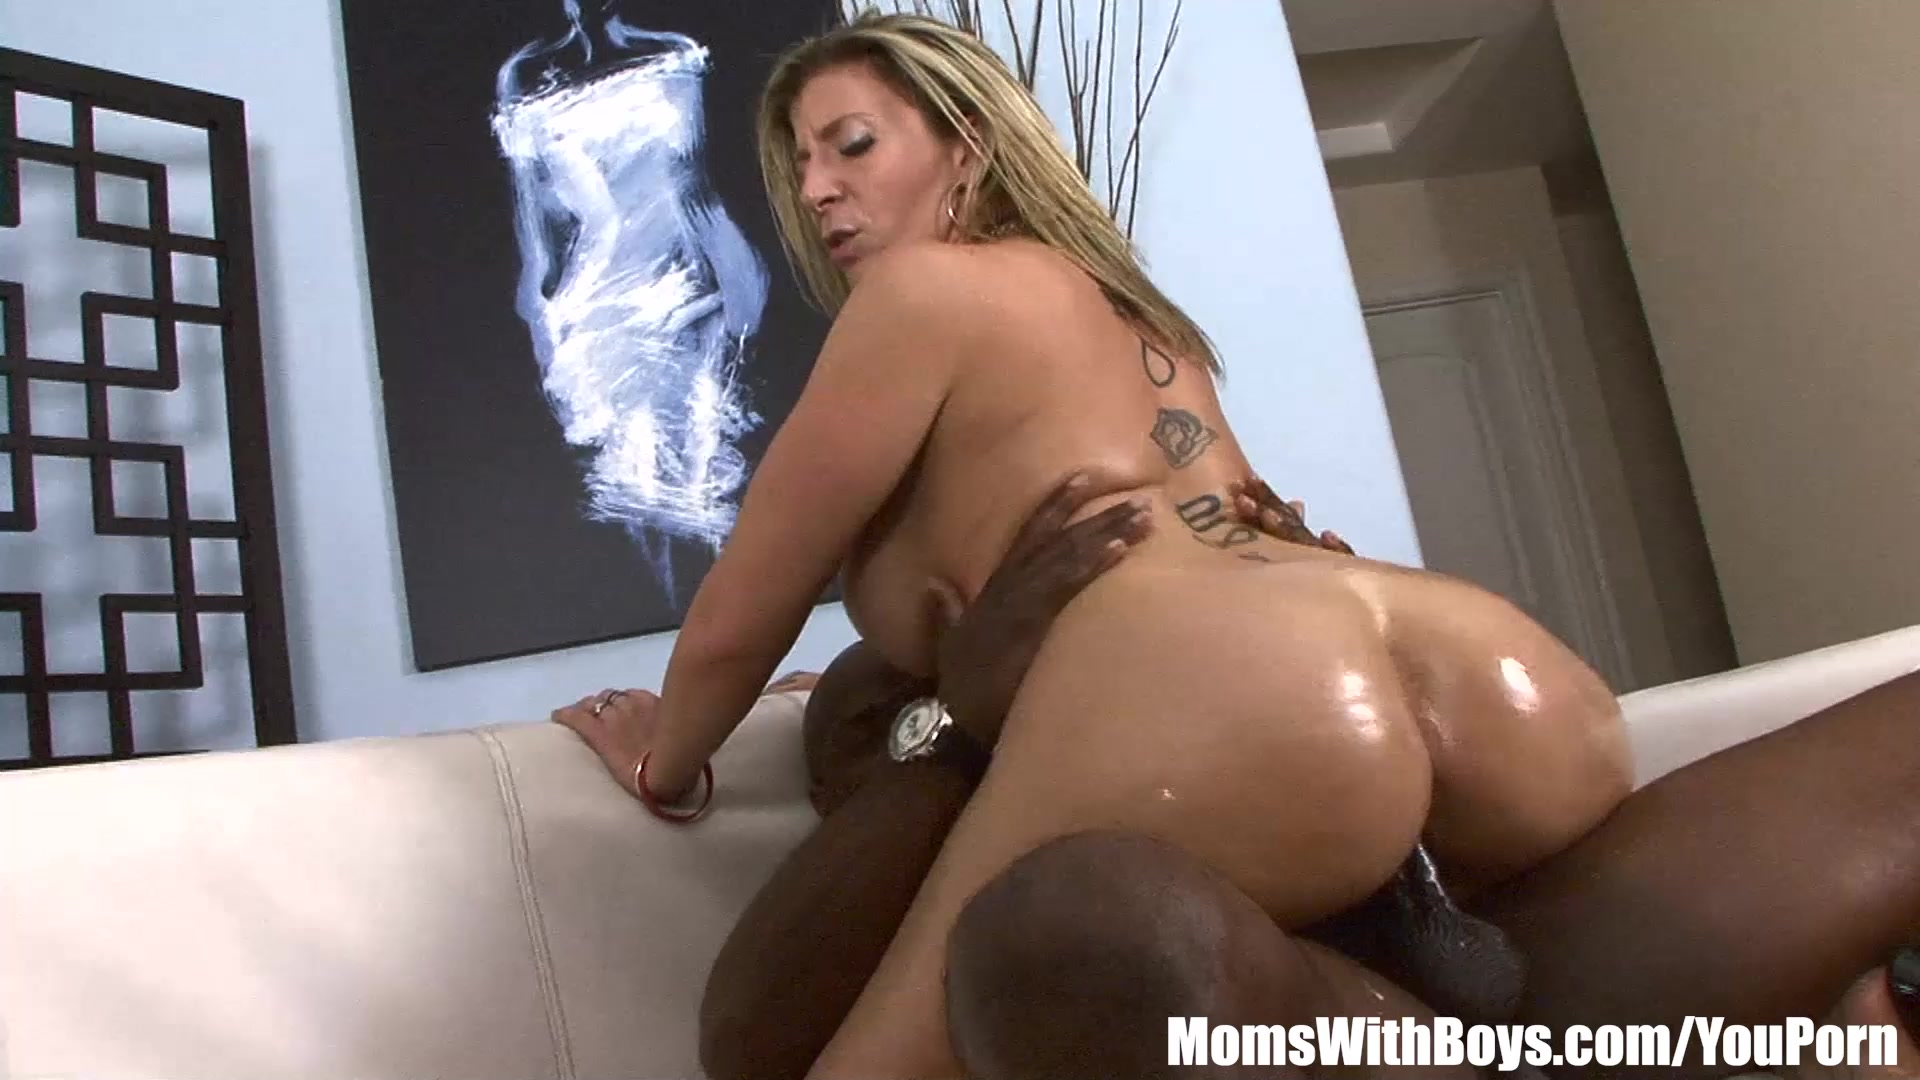 Abby winters hairy girl pussy